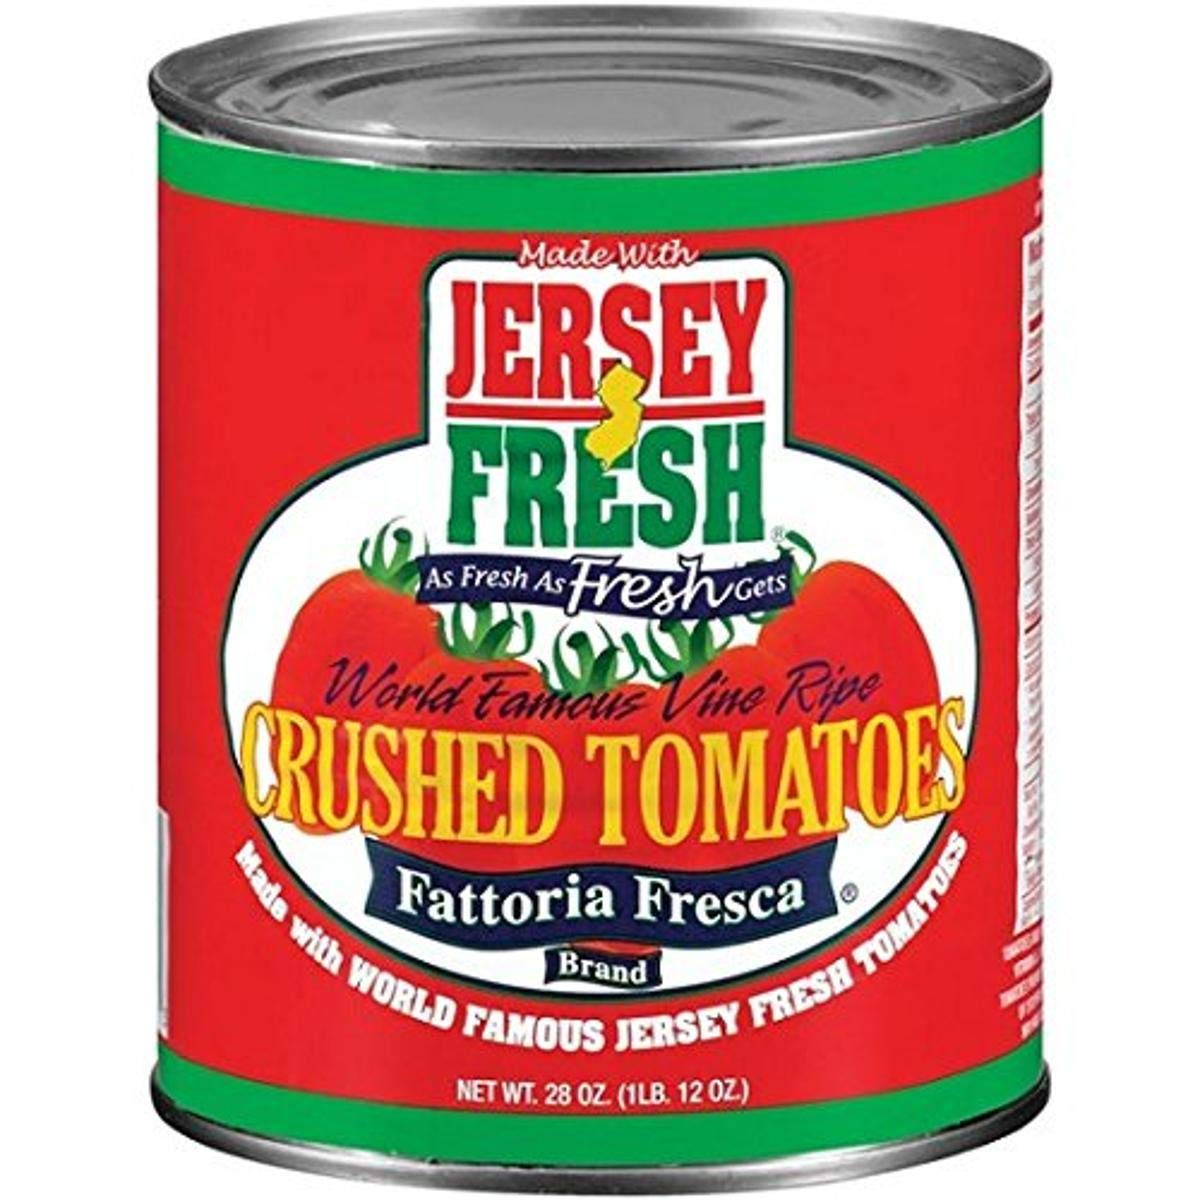 Jersey Fresh Crushed Tomatoes Fattoria 28 Ounce Fresca o Pack ! Super beauty product restock quality top! depot